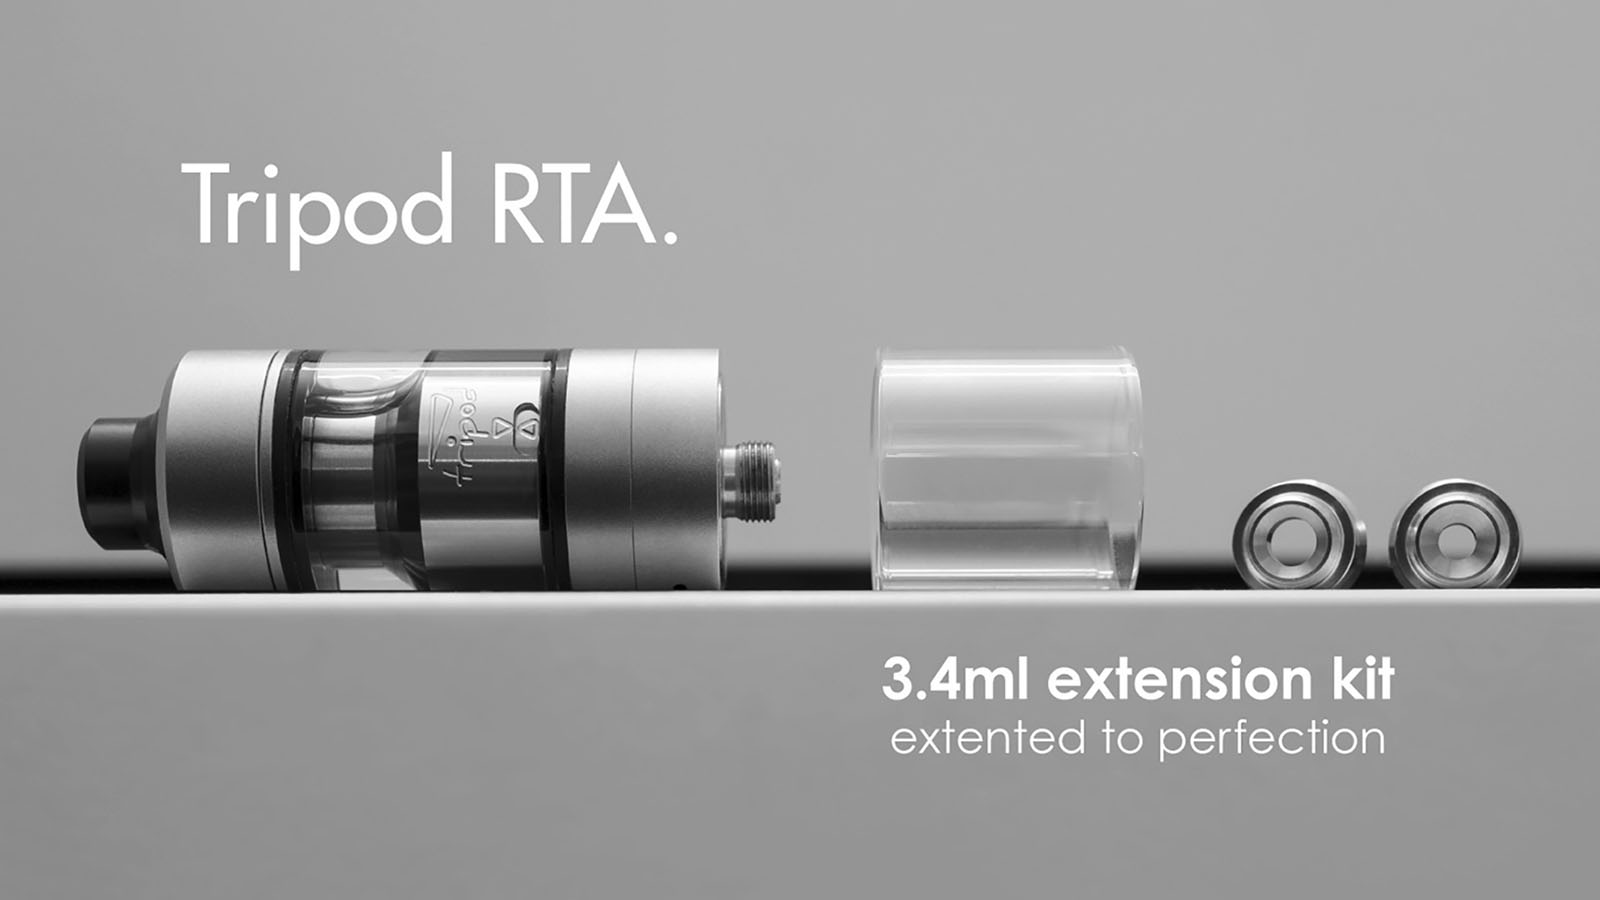 Tripod RTA Extension Kit